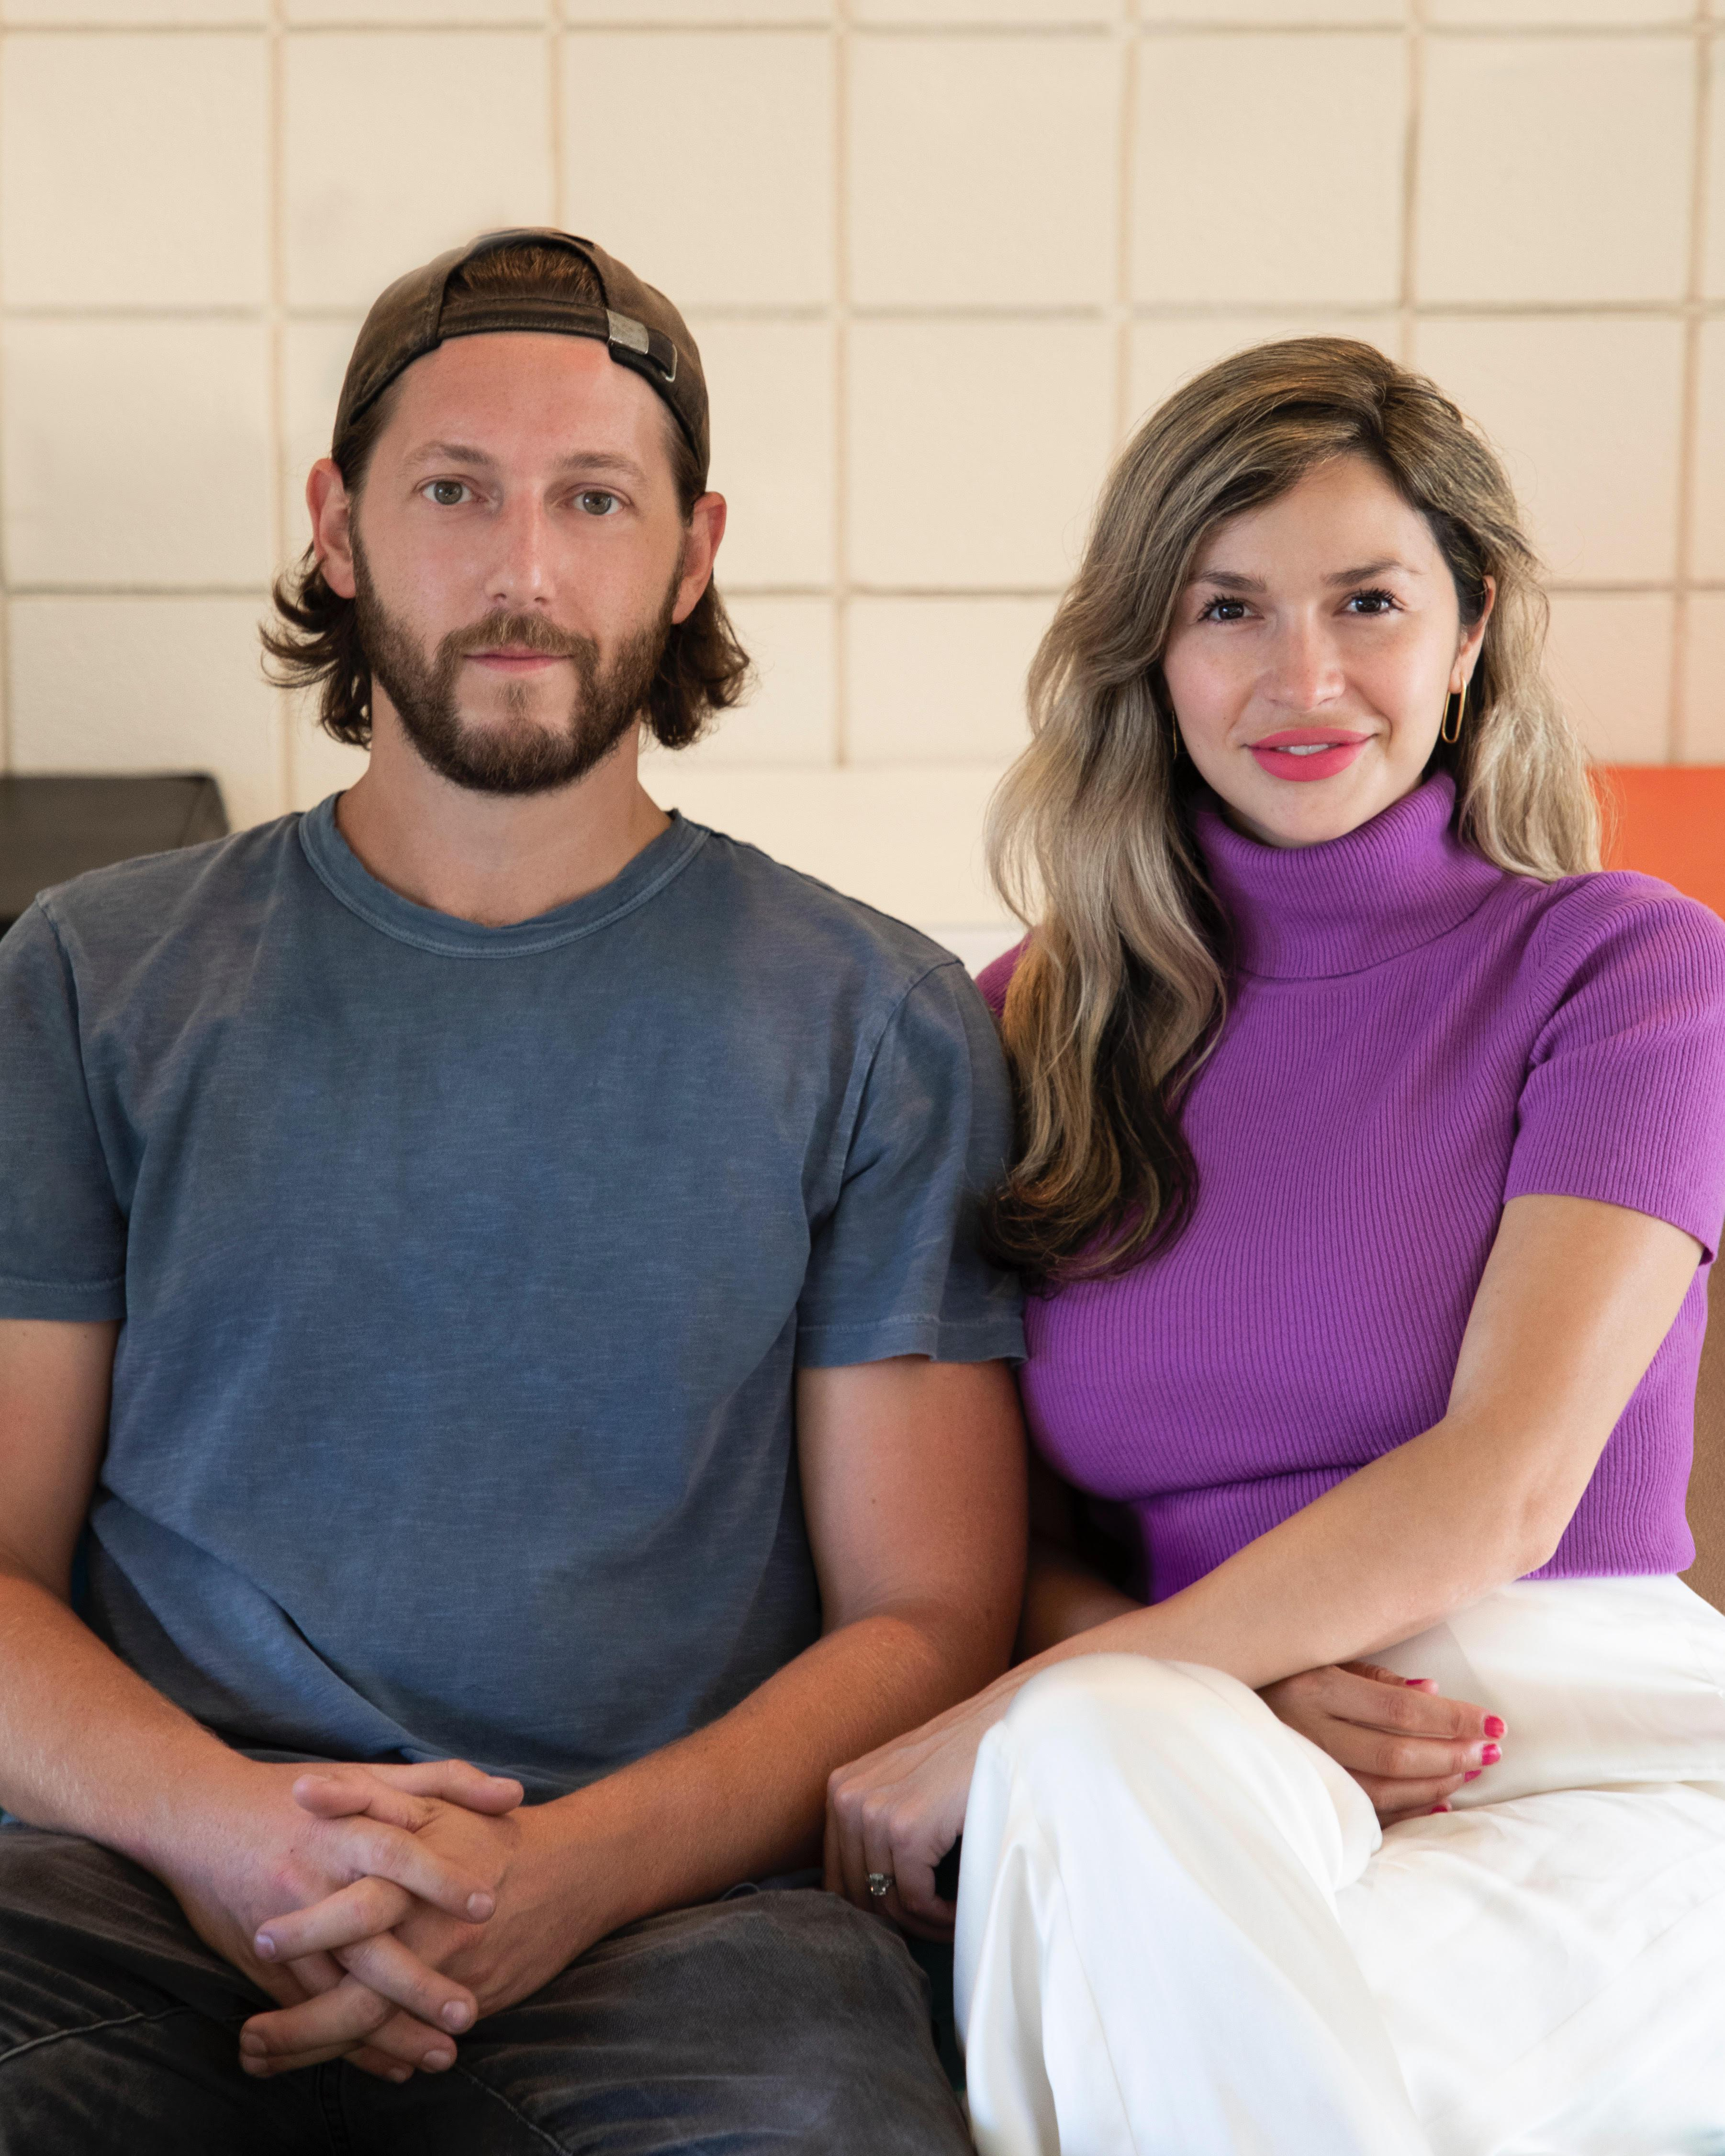 Cofounders and husband & wife team: Max Kislevitz and Natalie Holloway (CEO).